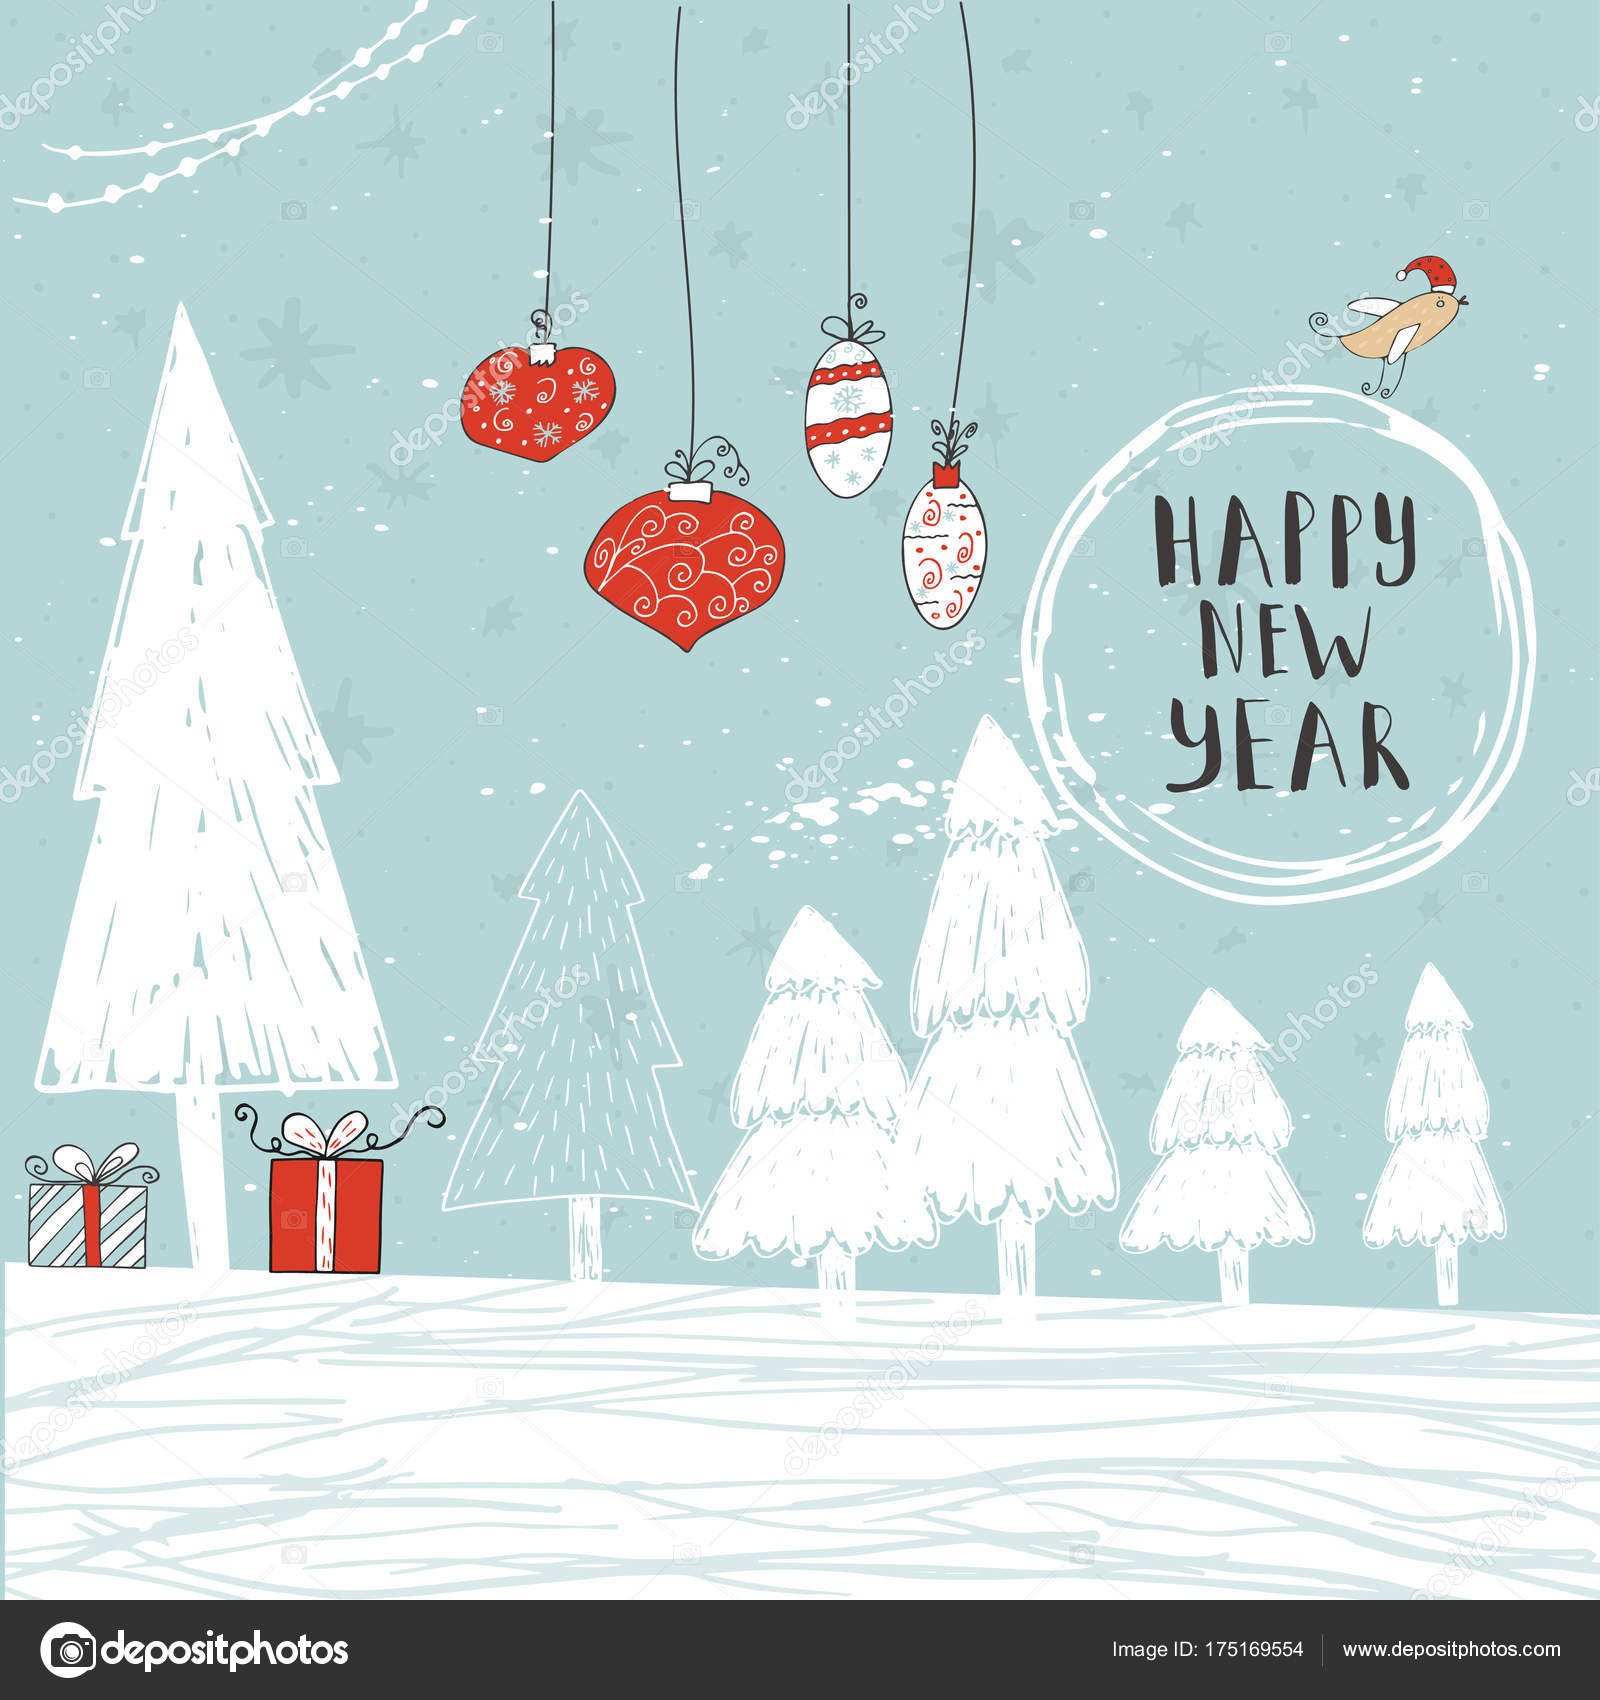 Christmas card text tree presents winter background snow snowflakes christmas card with text tree and presents on a winter background with snow and snowflakes greeting card template poster with hand drawn quote m4hsunfo